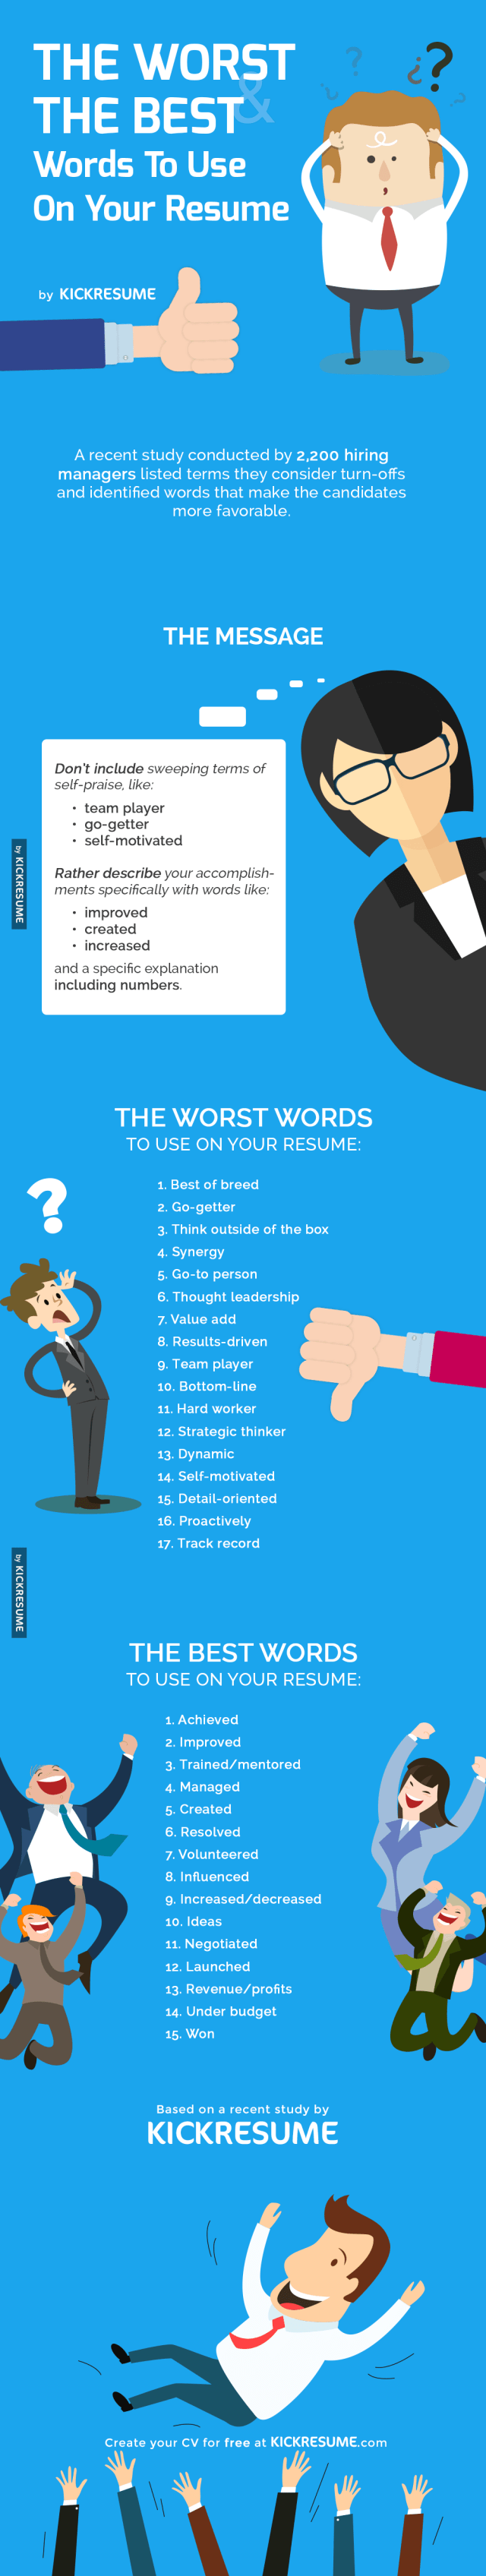 The Worst and Best Words to Use on Your Resume